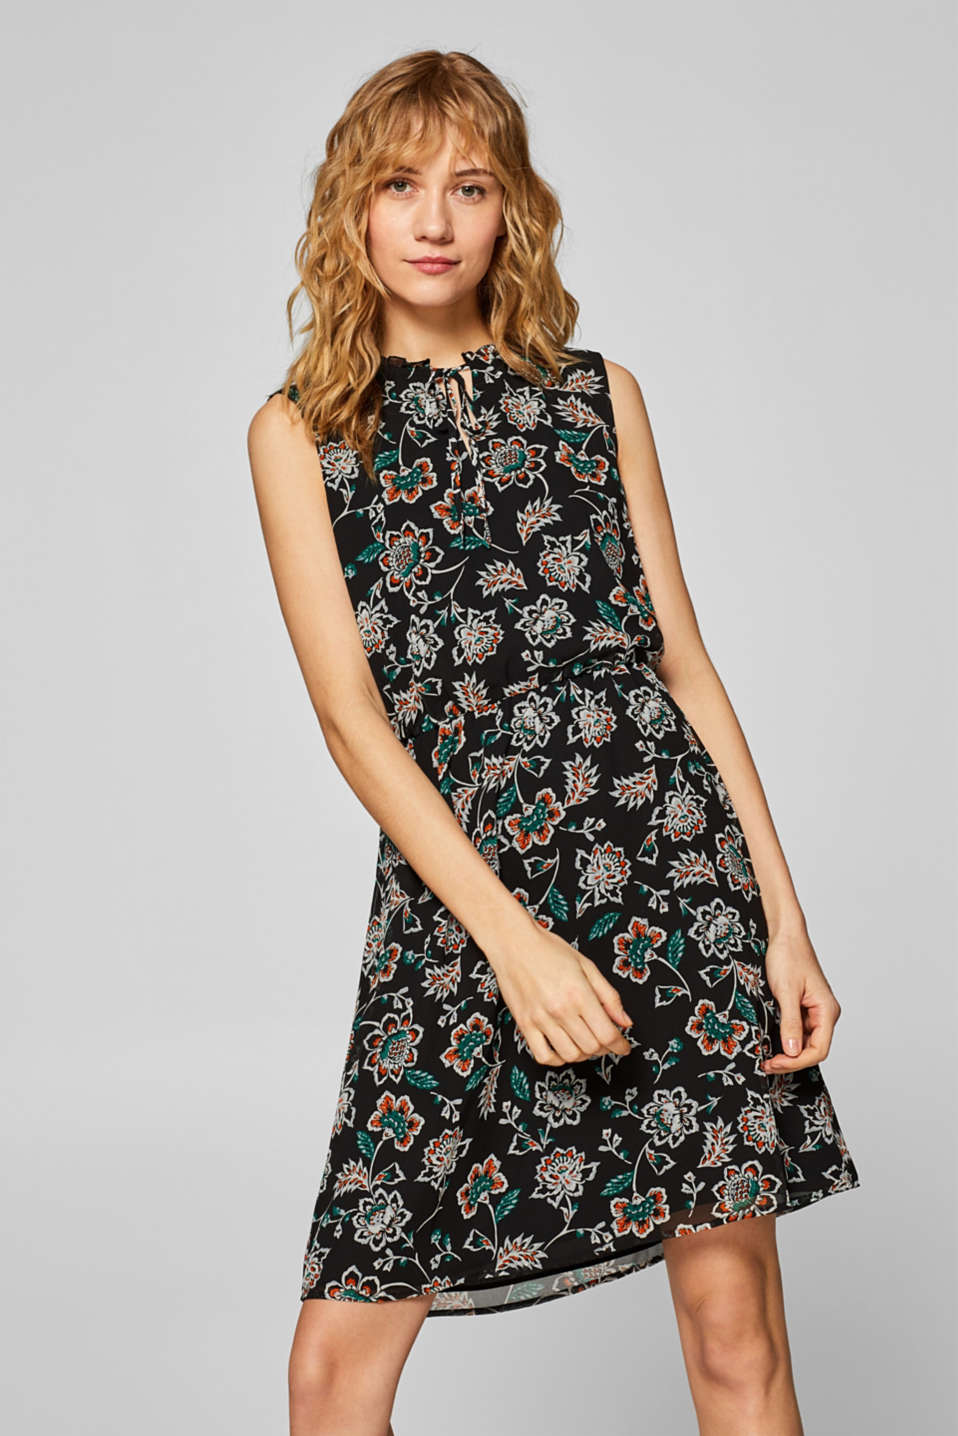 Chiffon dress with a print and frilled neckline